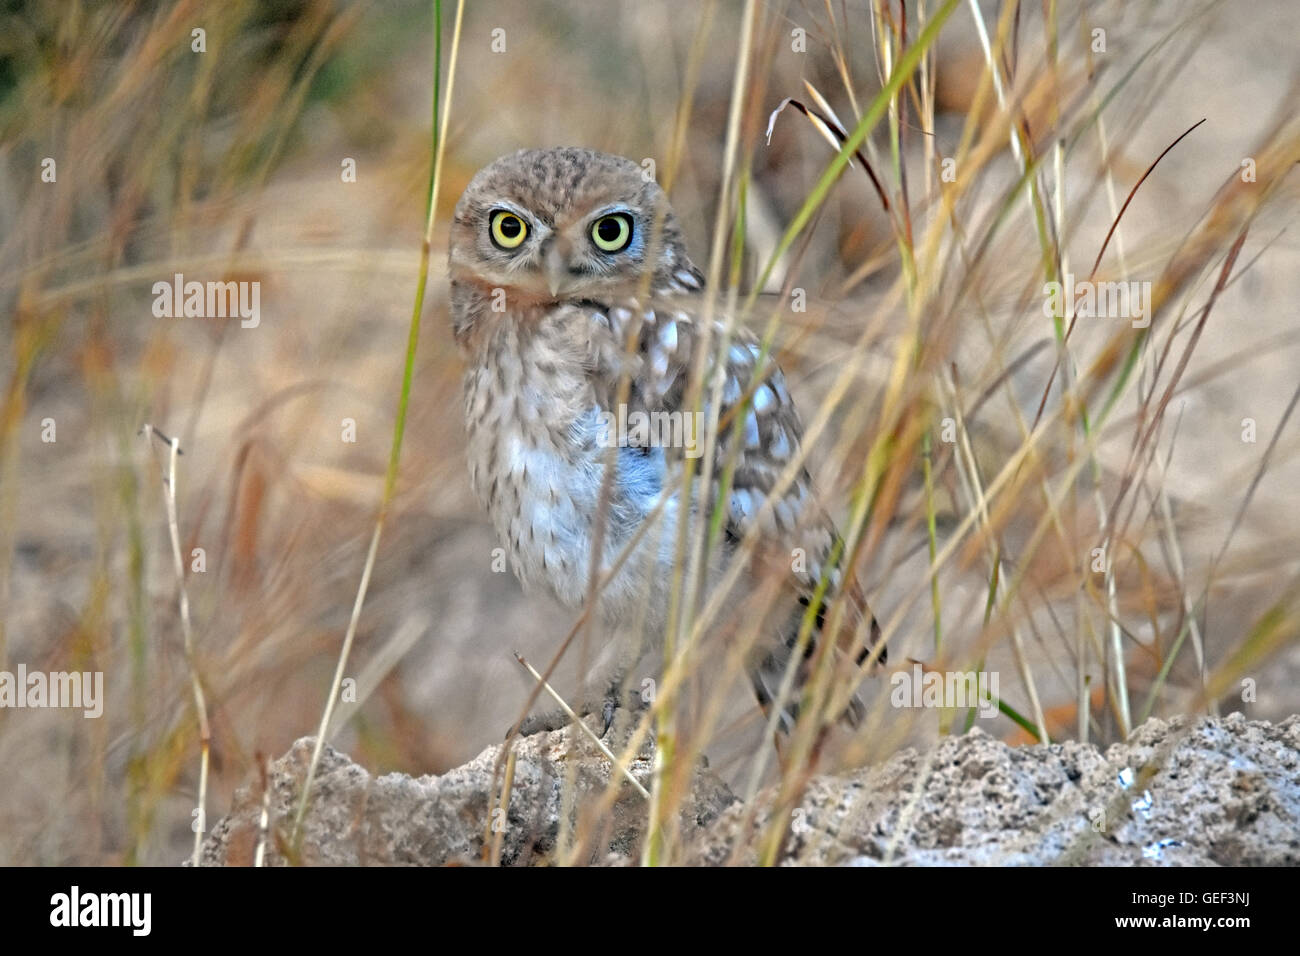 little owl perching on a rock - Stock Image